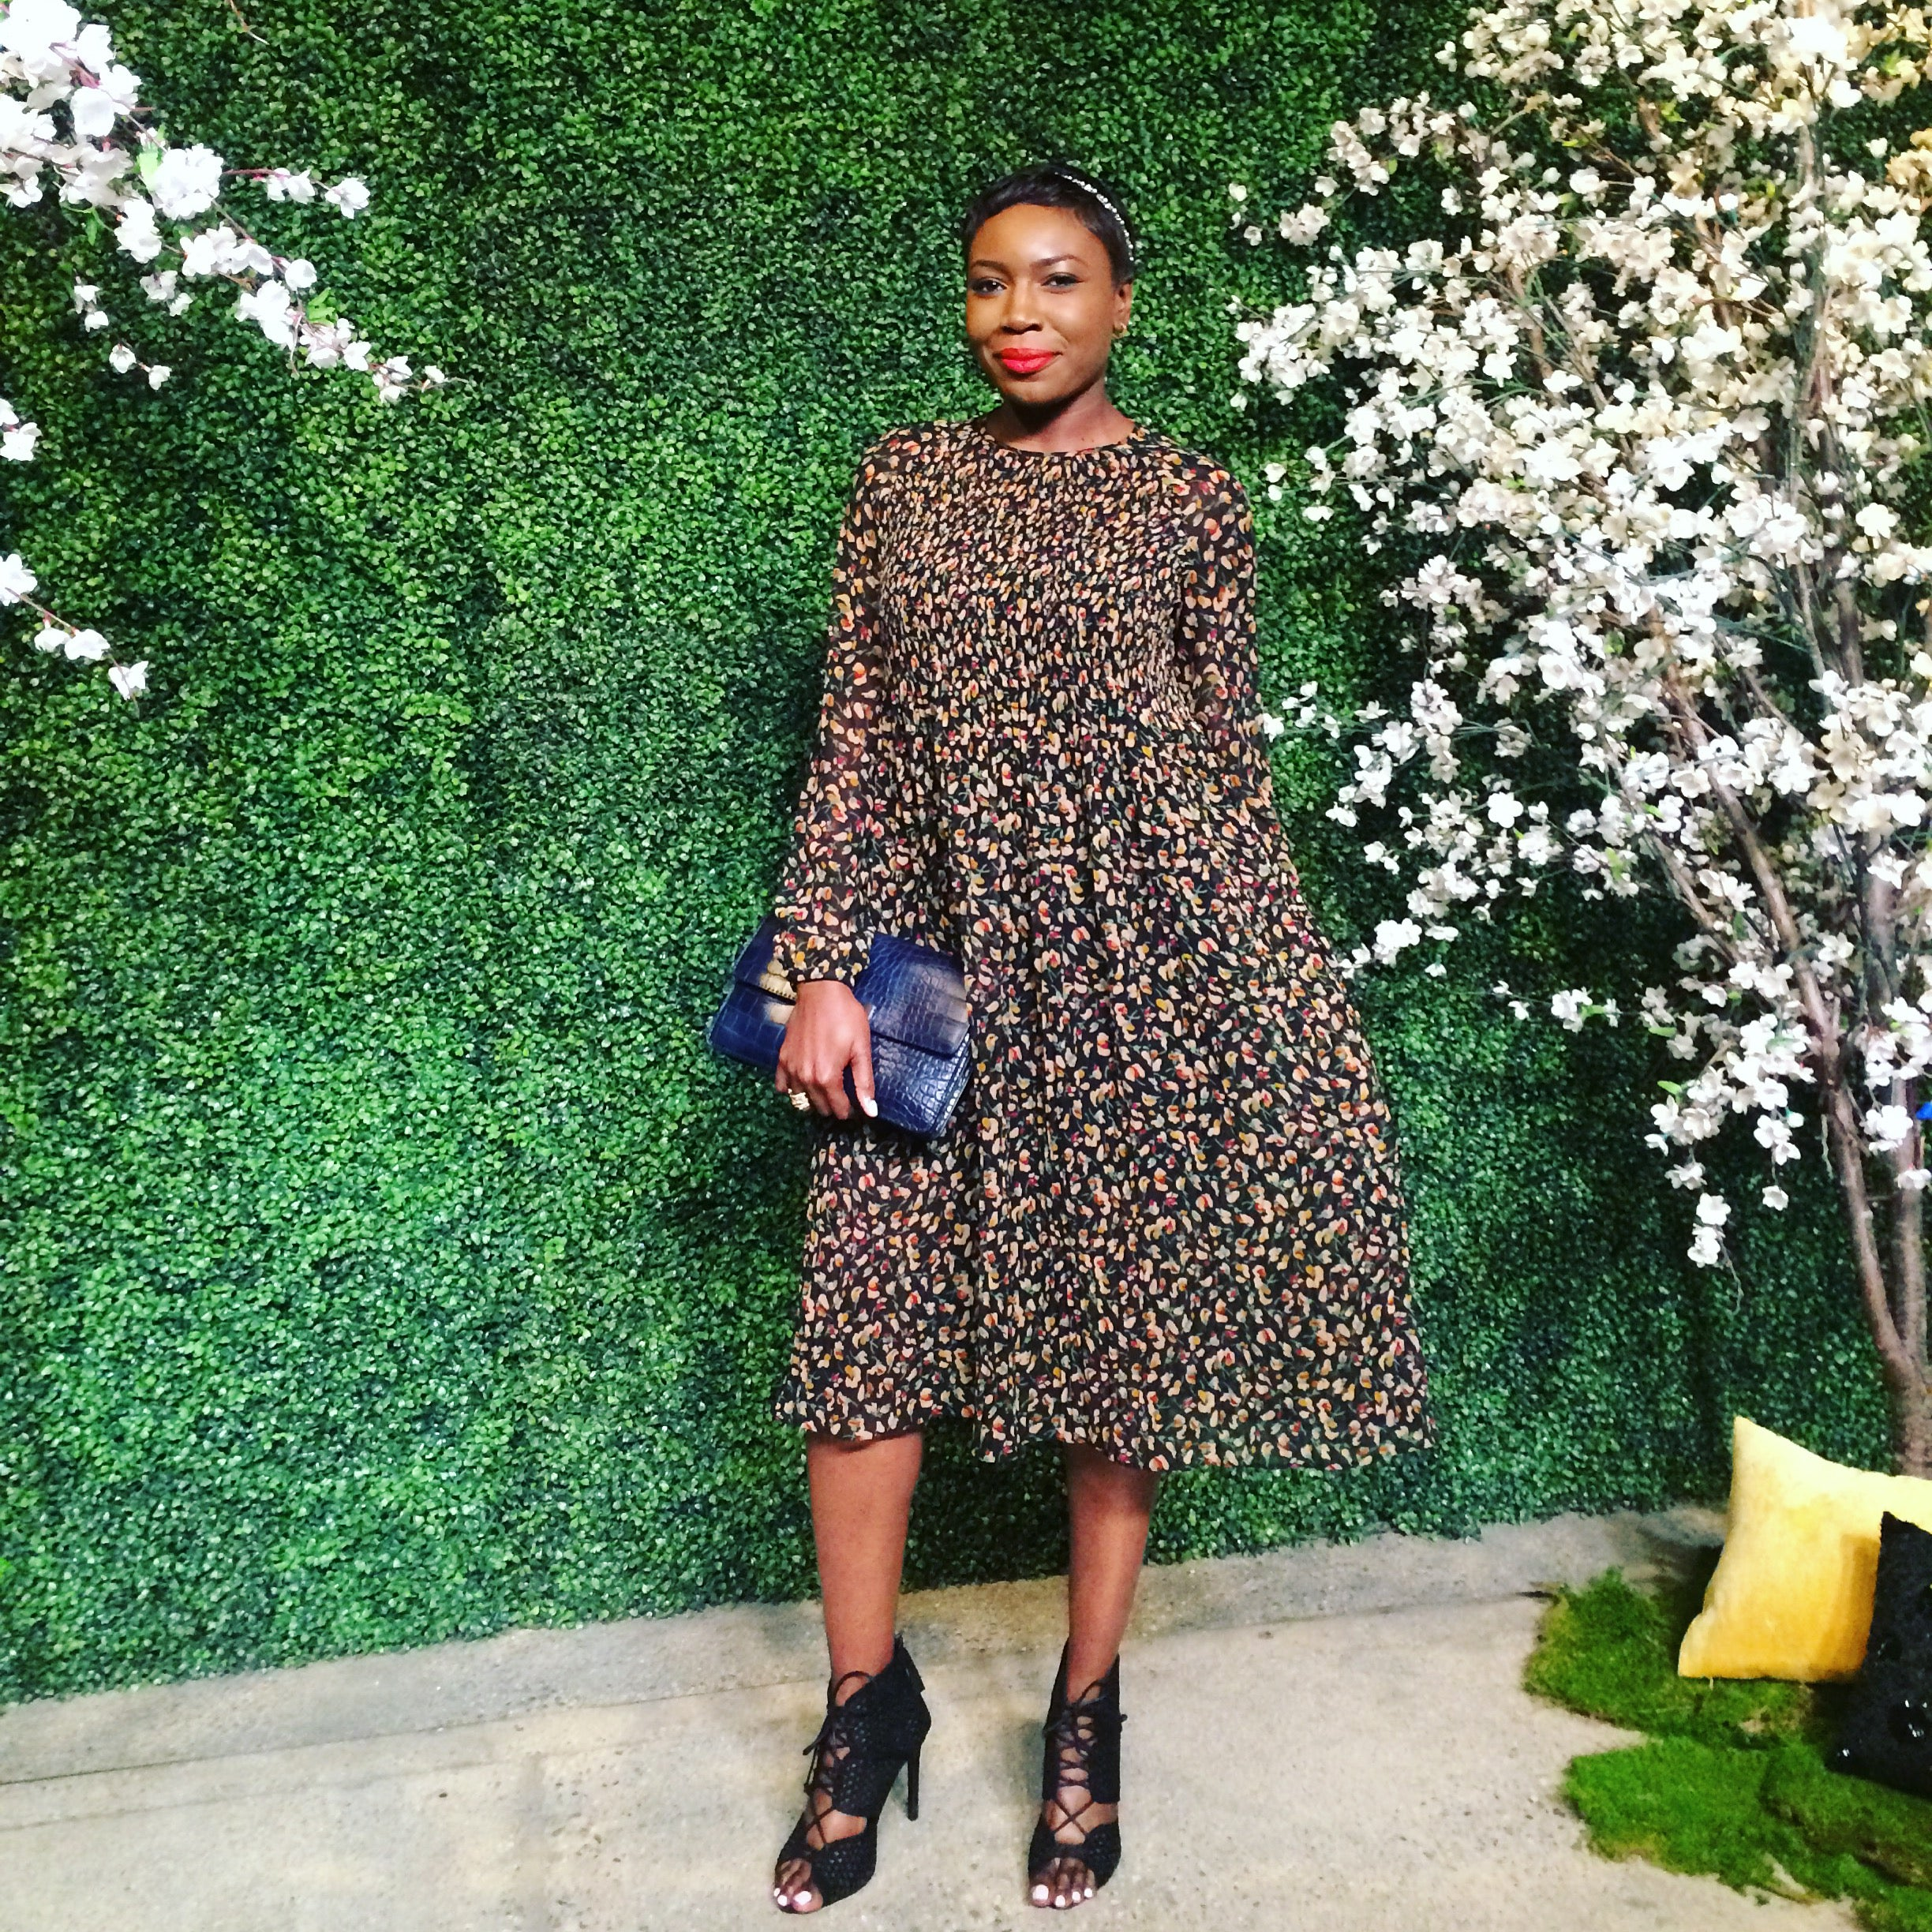 Blogger and Influencer, Wemi Opakunle entering the Alice and Olivia Runway Show at NeueHouse in Hollywood.